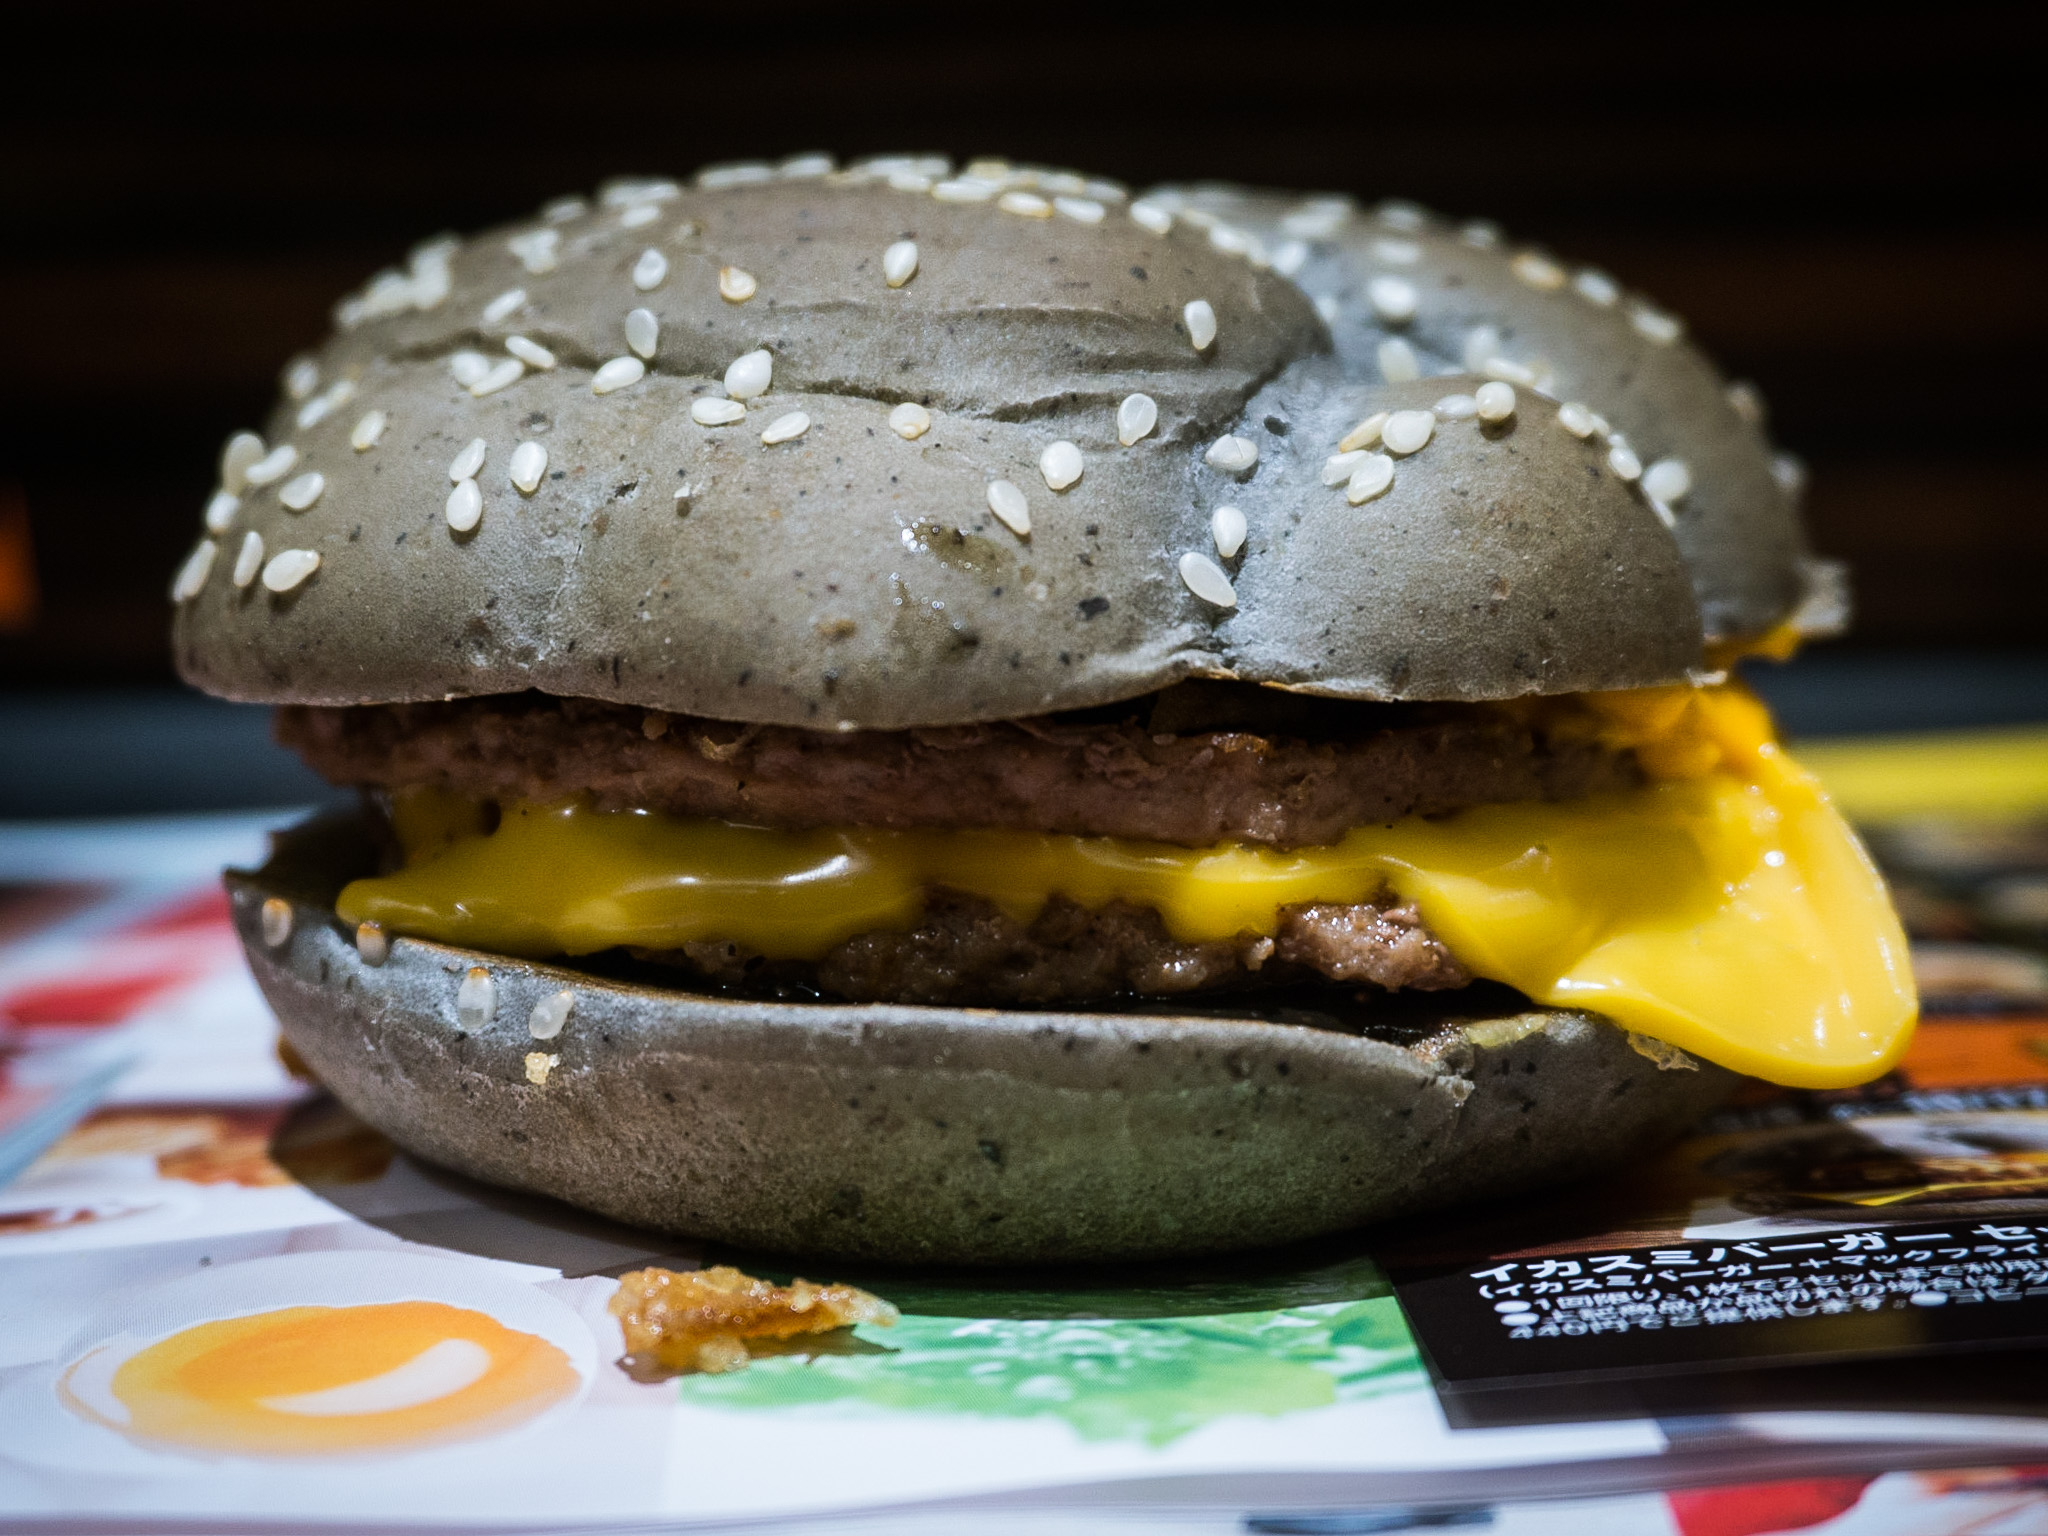 the real McDonald's Black Burger in all its blue-grey glory